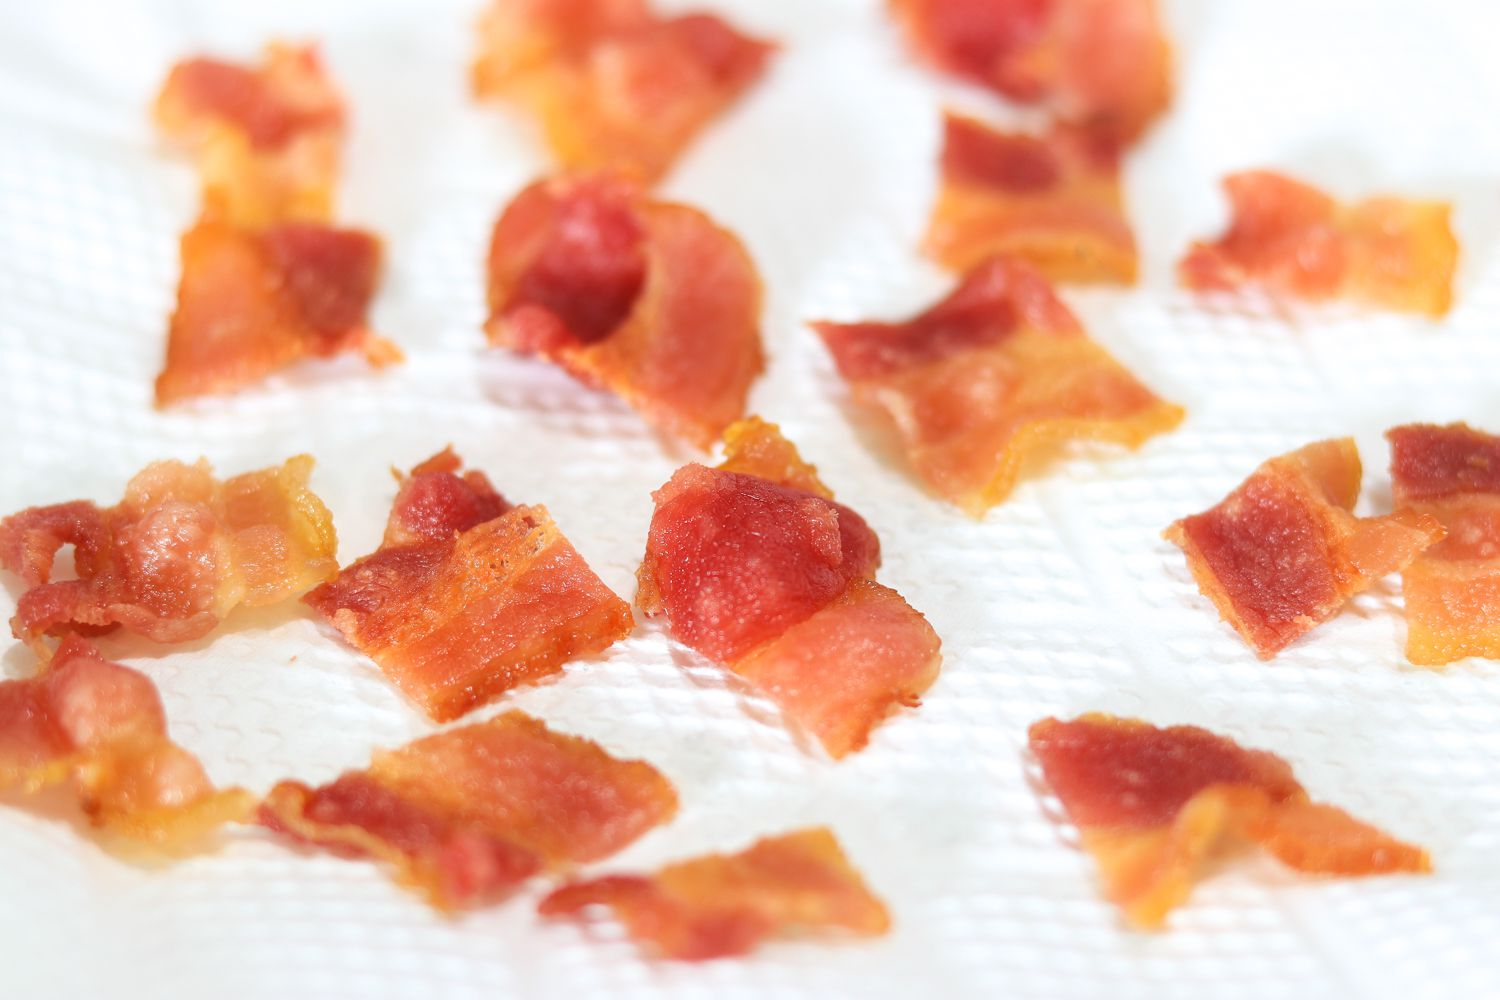 Bacon draining on paper towels